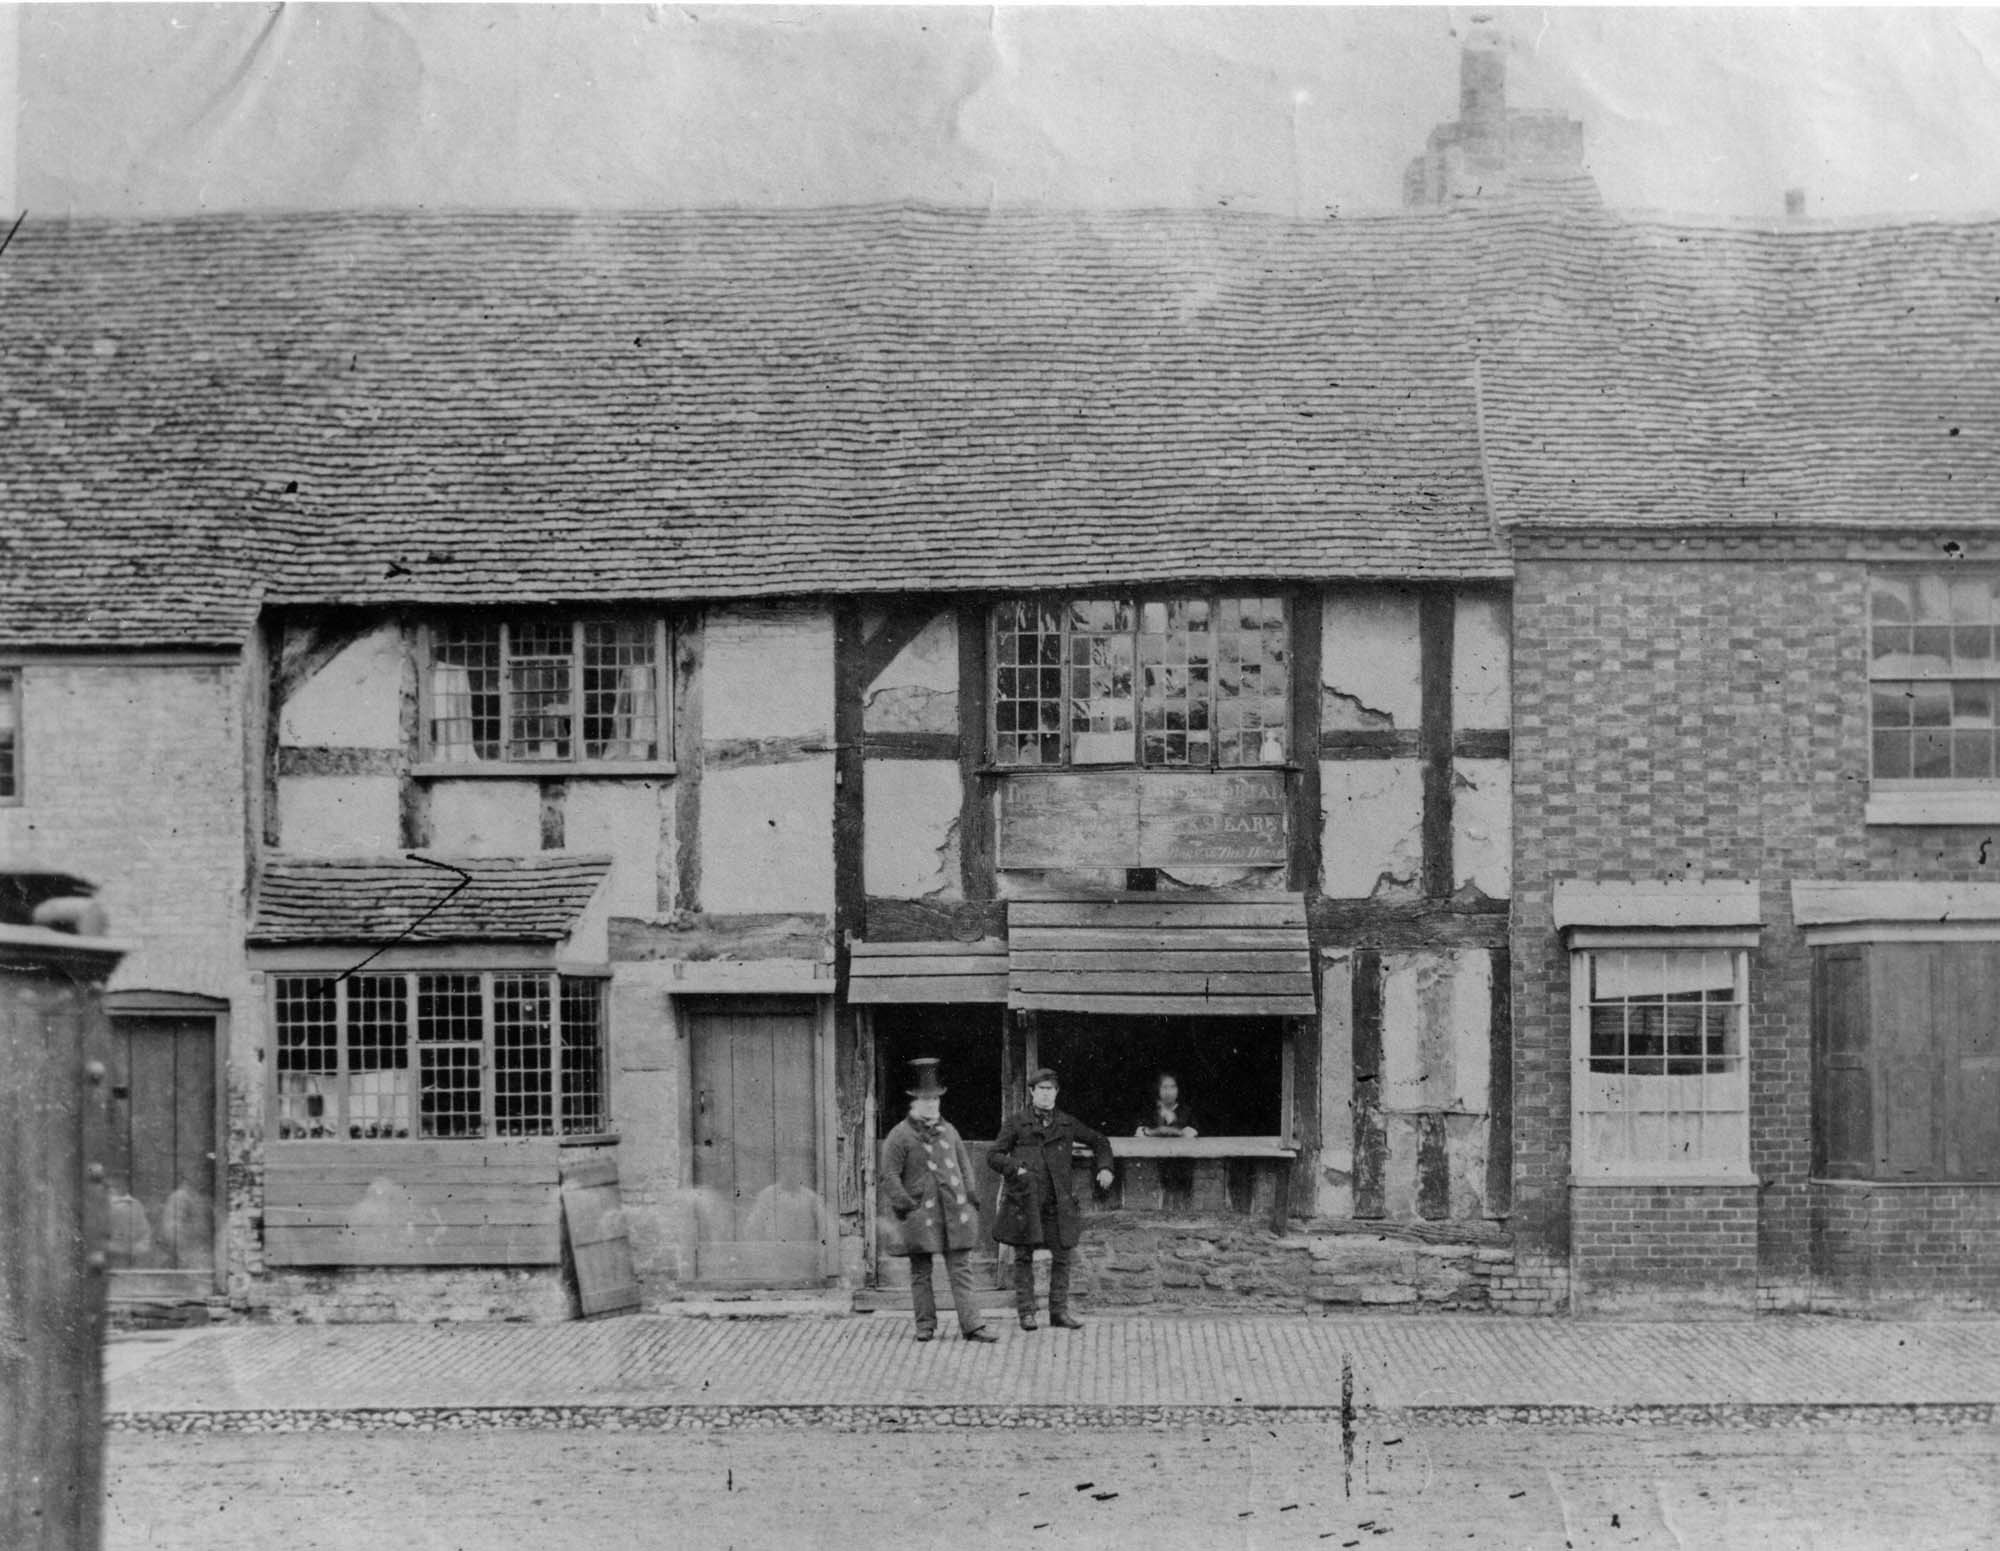 an old black and white photo of timber framed building with two Victorian men in the foreground - one wearing a top hat